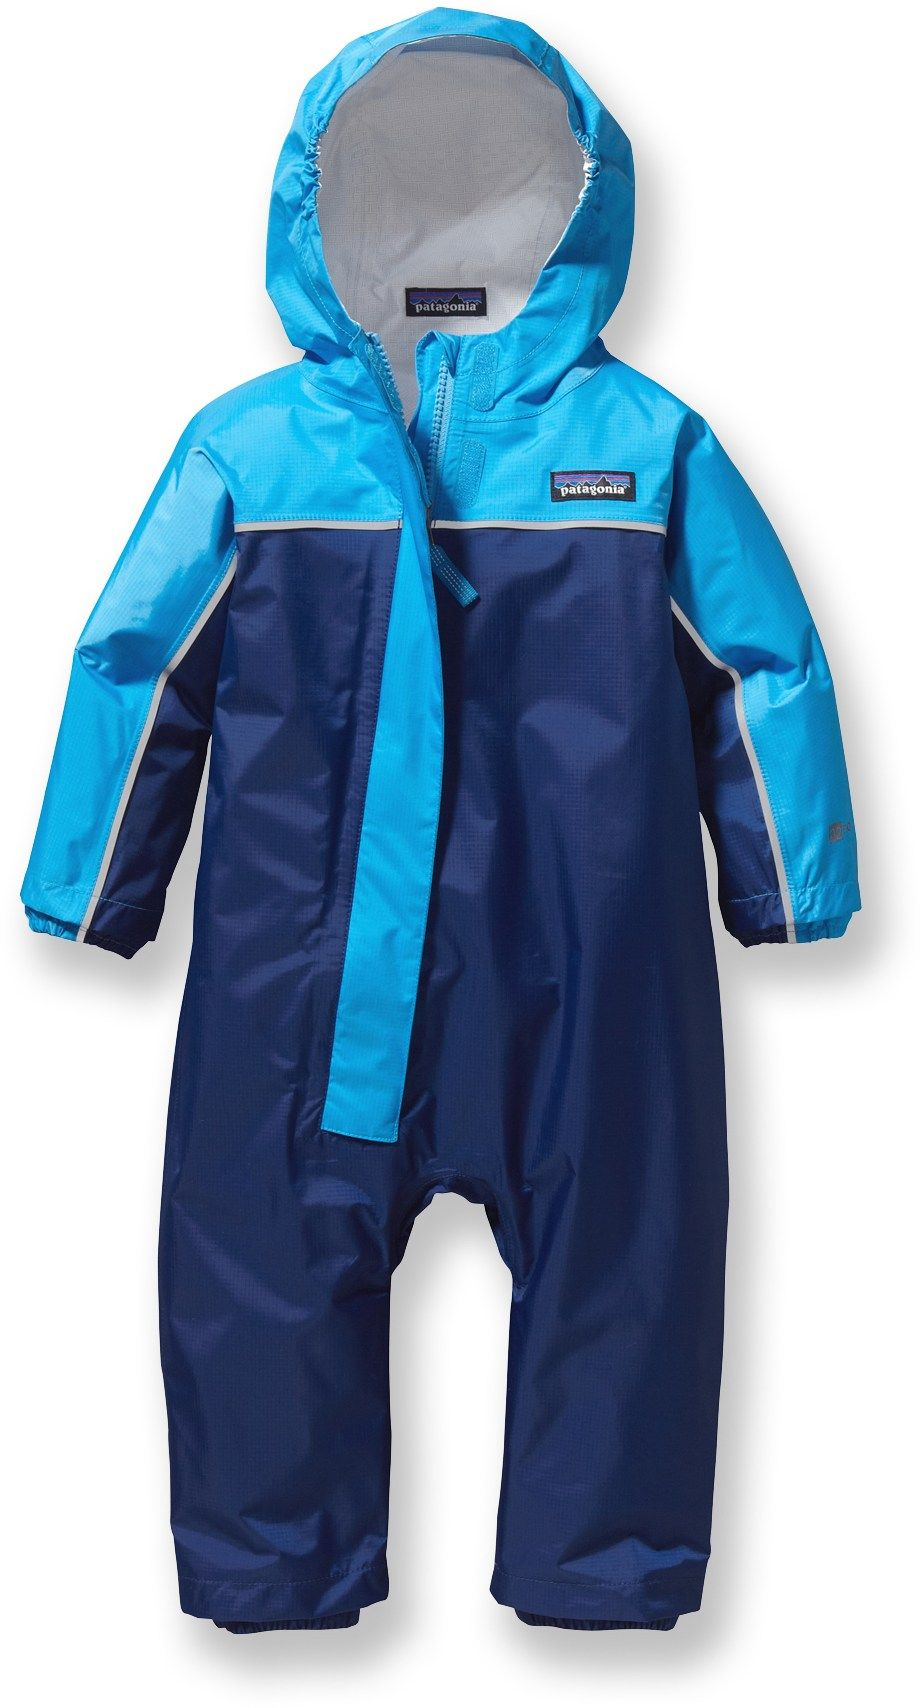 Patagonia Unisex Baby Torrentshell One-Piece Rain Suit - Toddlers - Blue 7e224bad64b2